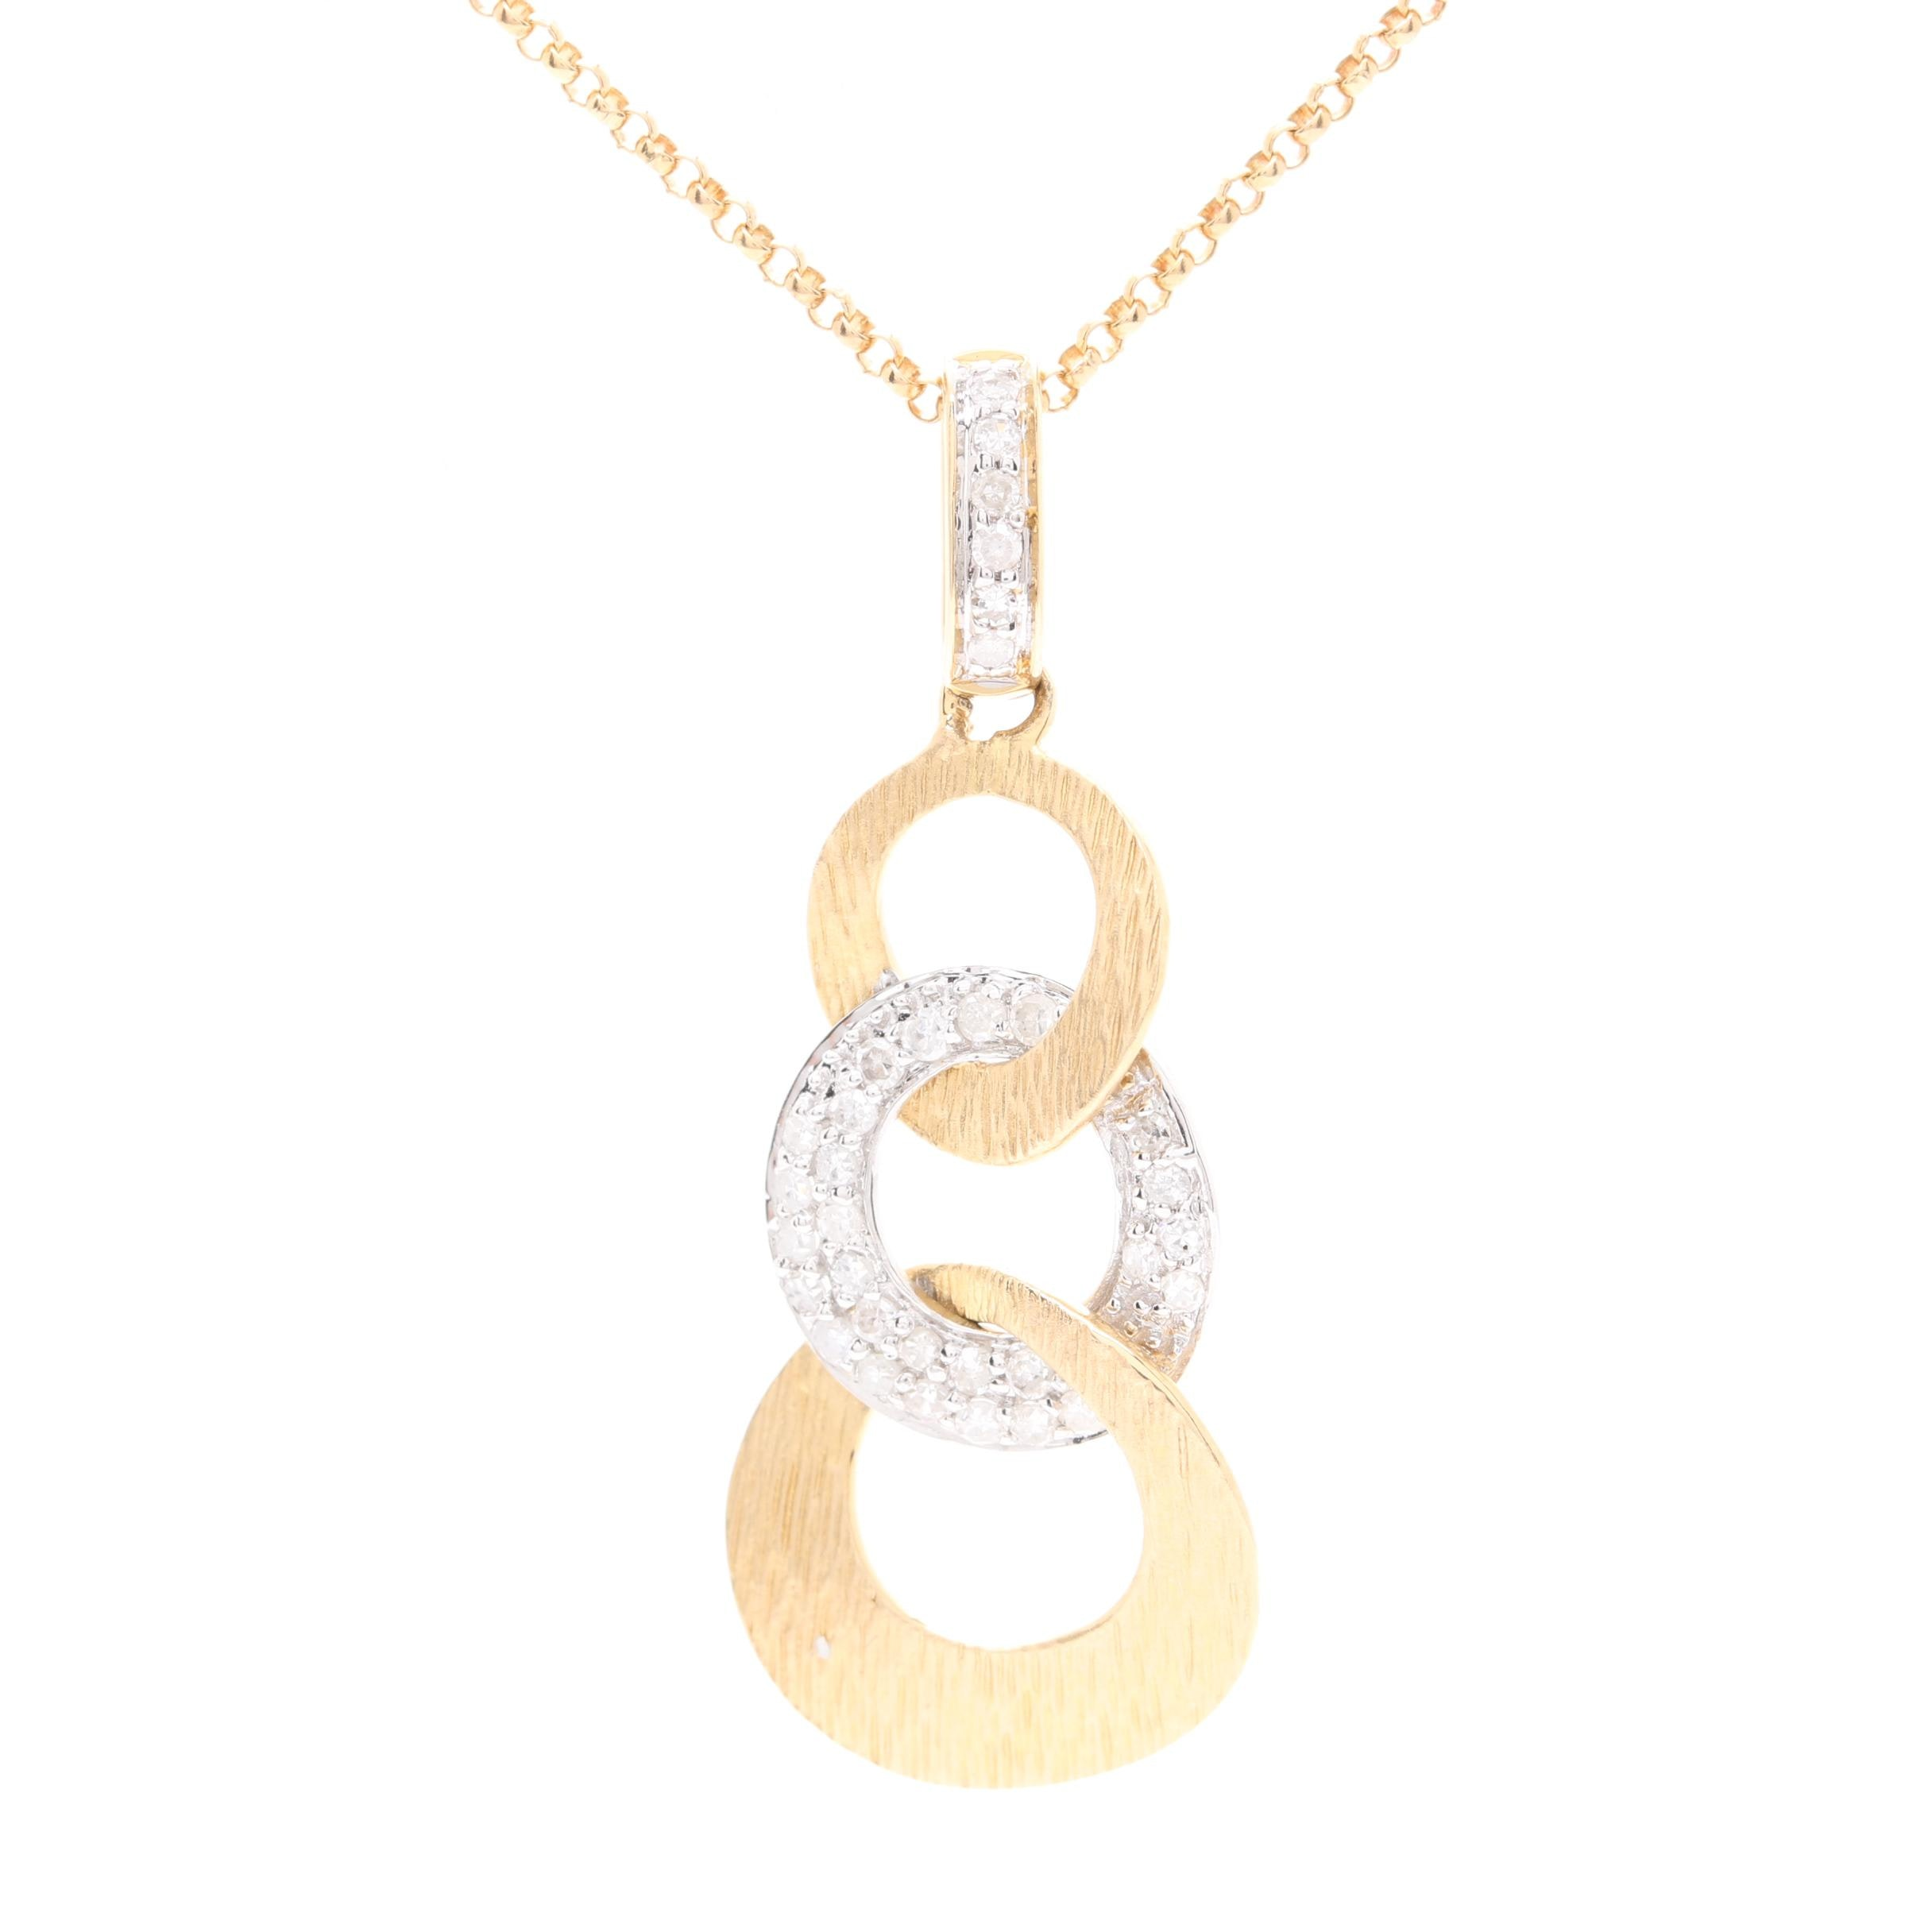 14K Yellow and White Gold Diamond Pendant Necklace